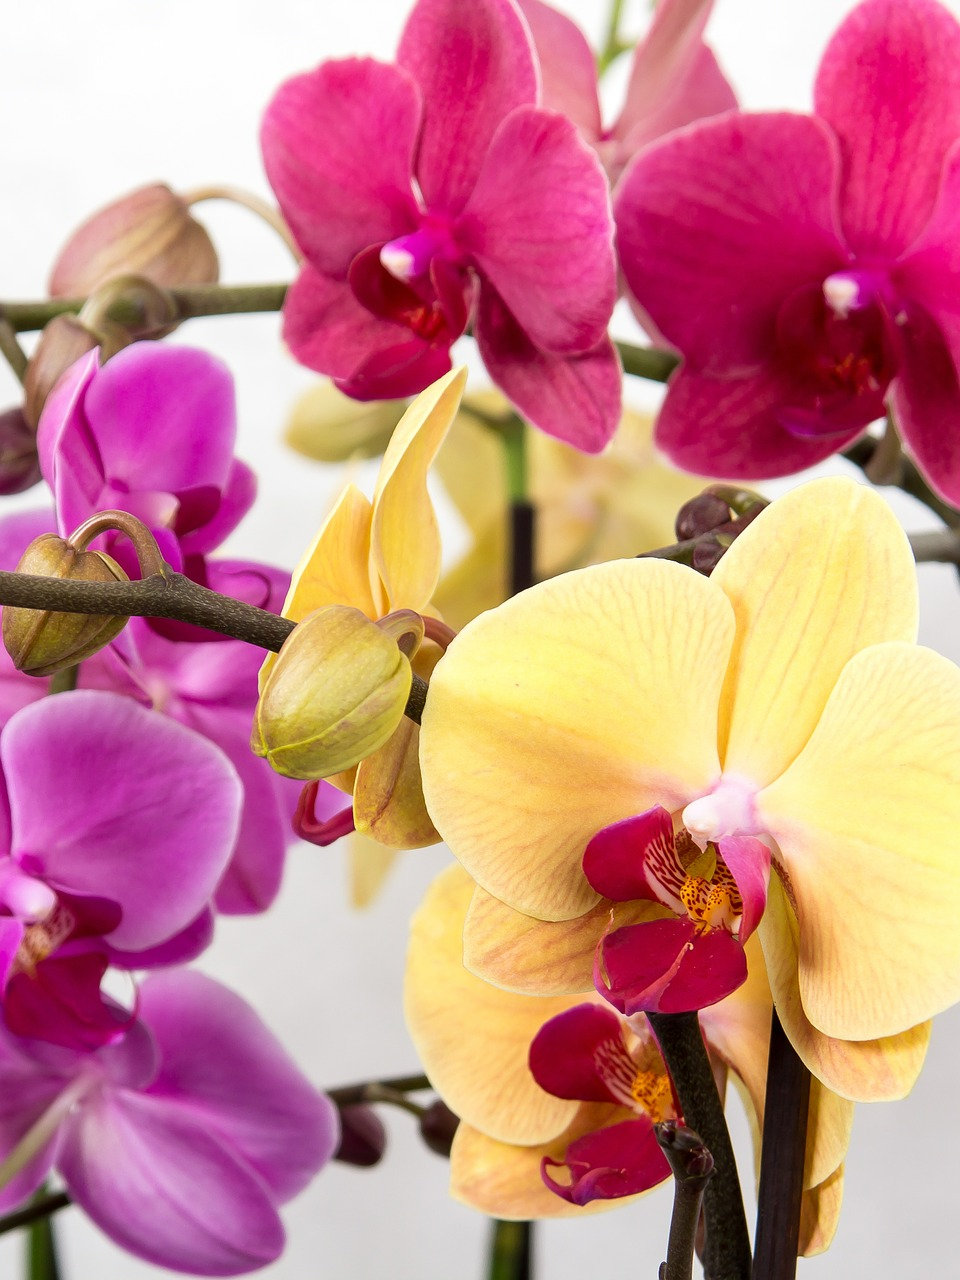 orchid-564125_1280